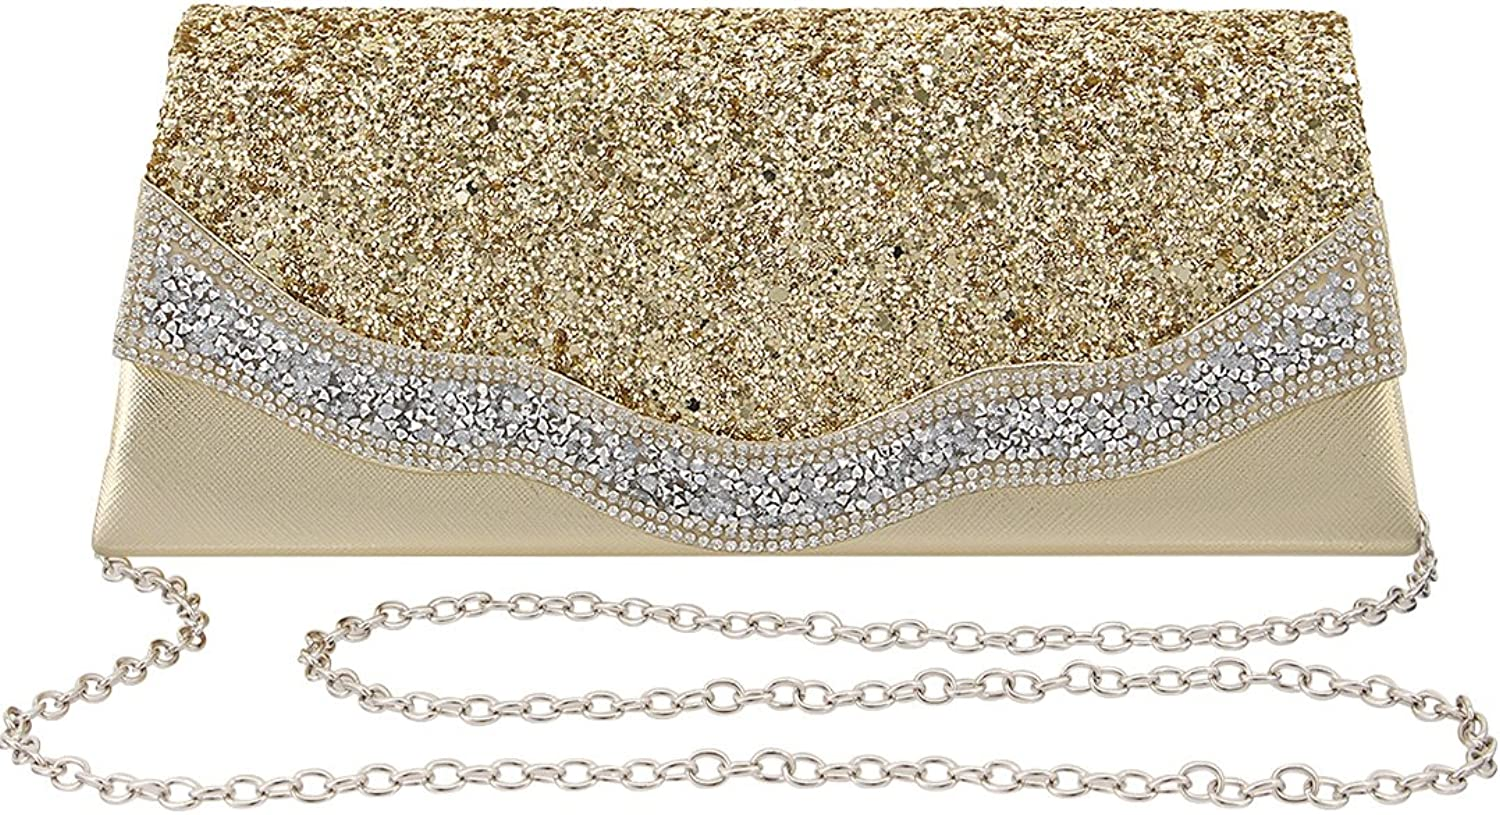 Naimo Shiny Rhinestone Sequin Clutch Bag Envelop Bag Evening Purse with Chain